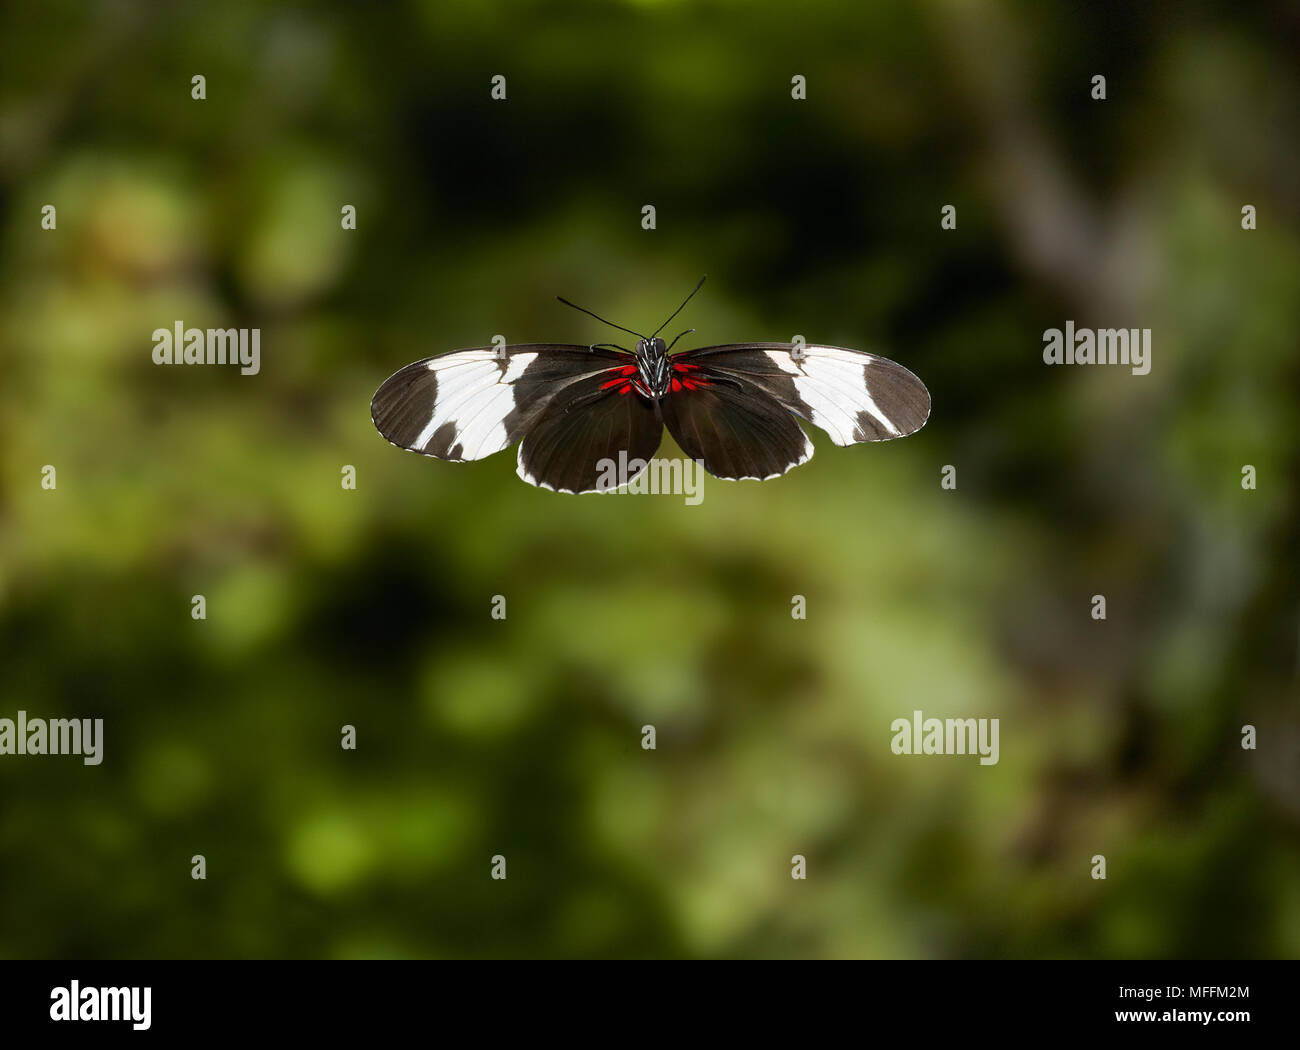 SAPHO HELICONIuS (Heliconius sapho) in flight,  HELICONIDAE, Central America. *HIGHER RATES APPLY* - Stock Image